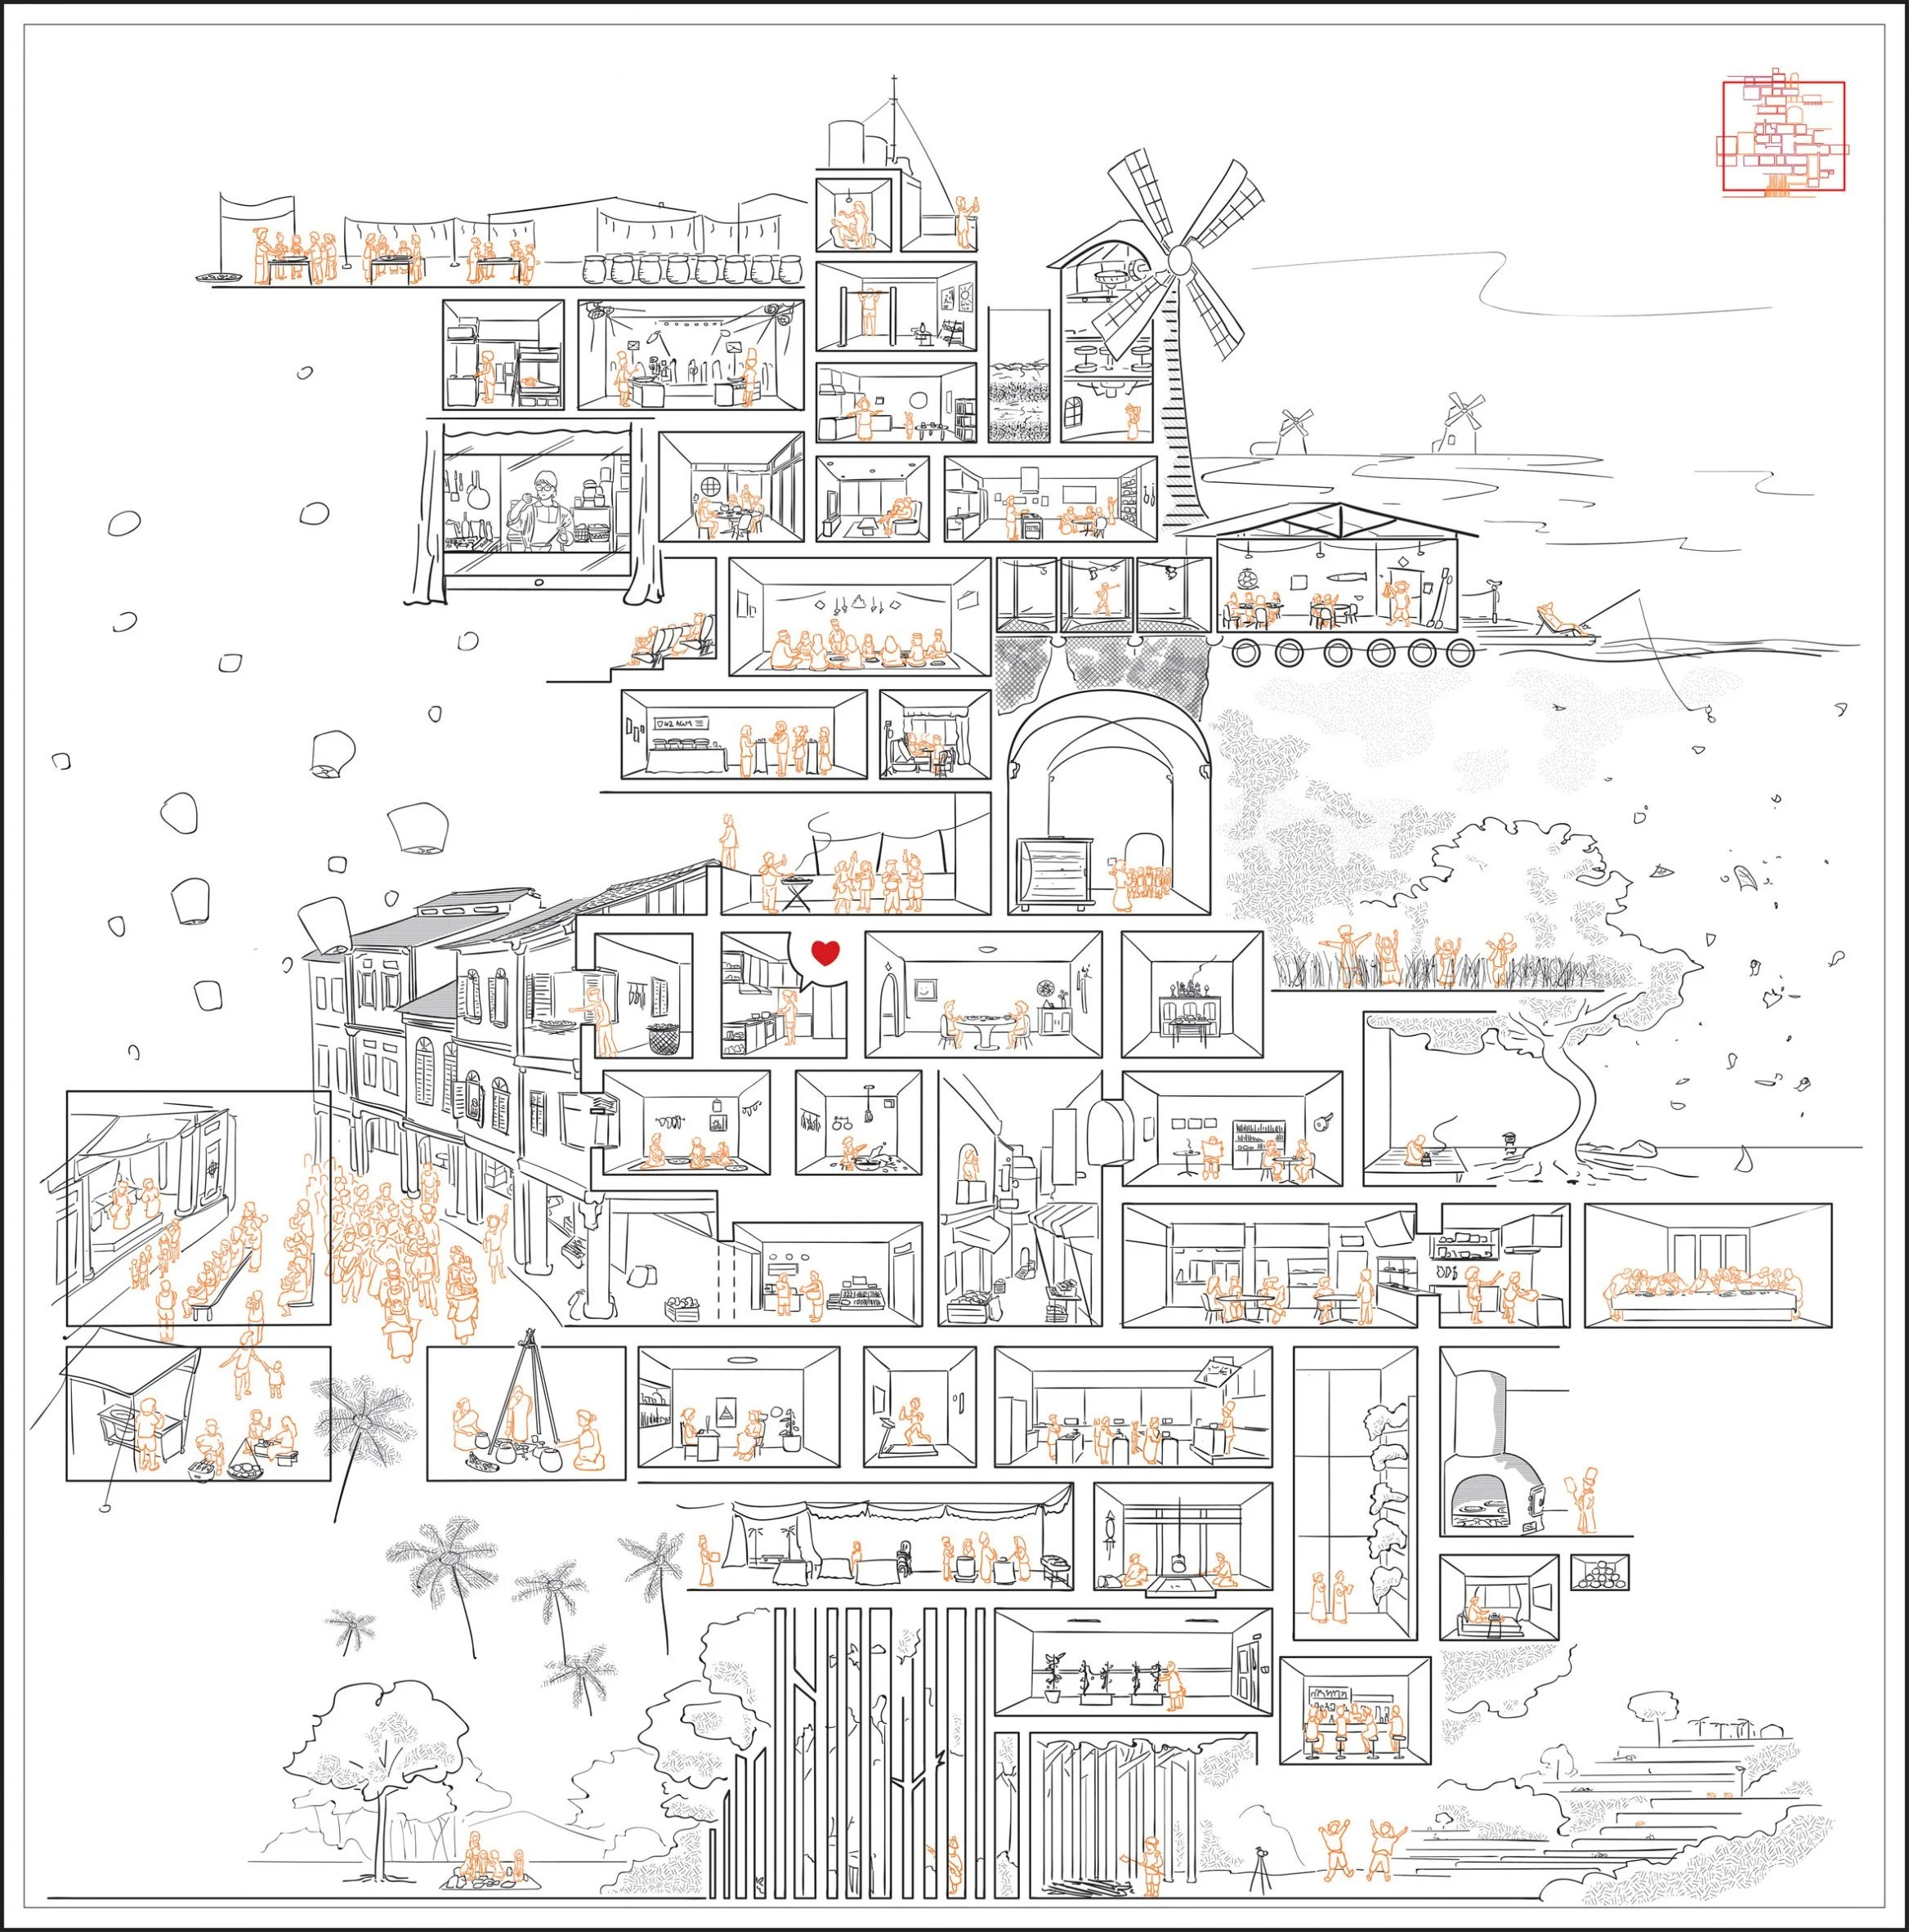 To Food, With Love: Architecture of an Intangible Culture